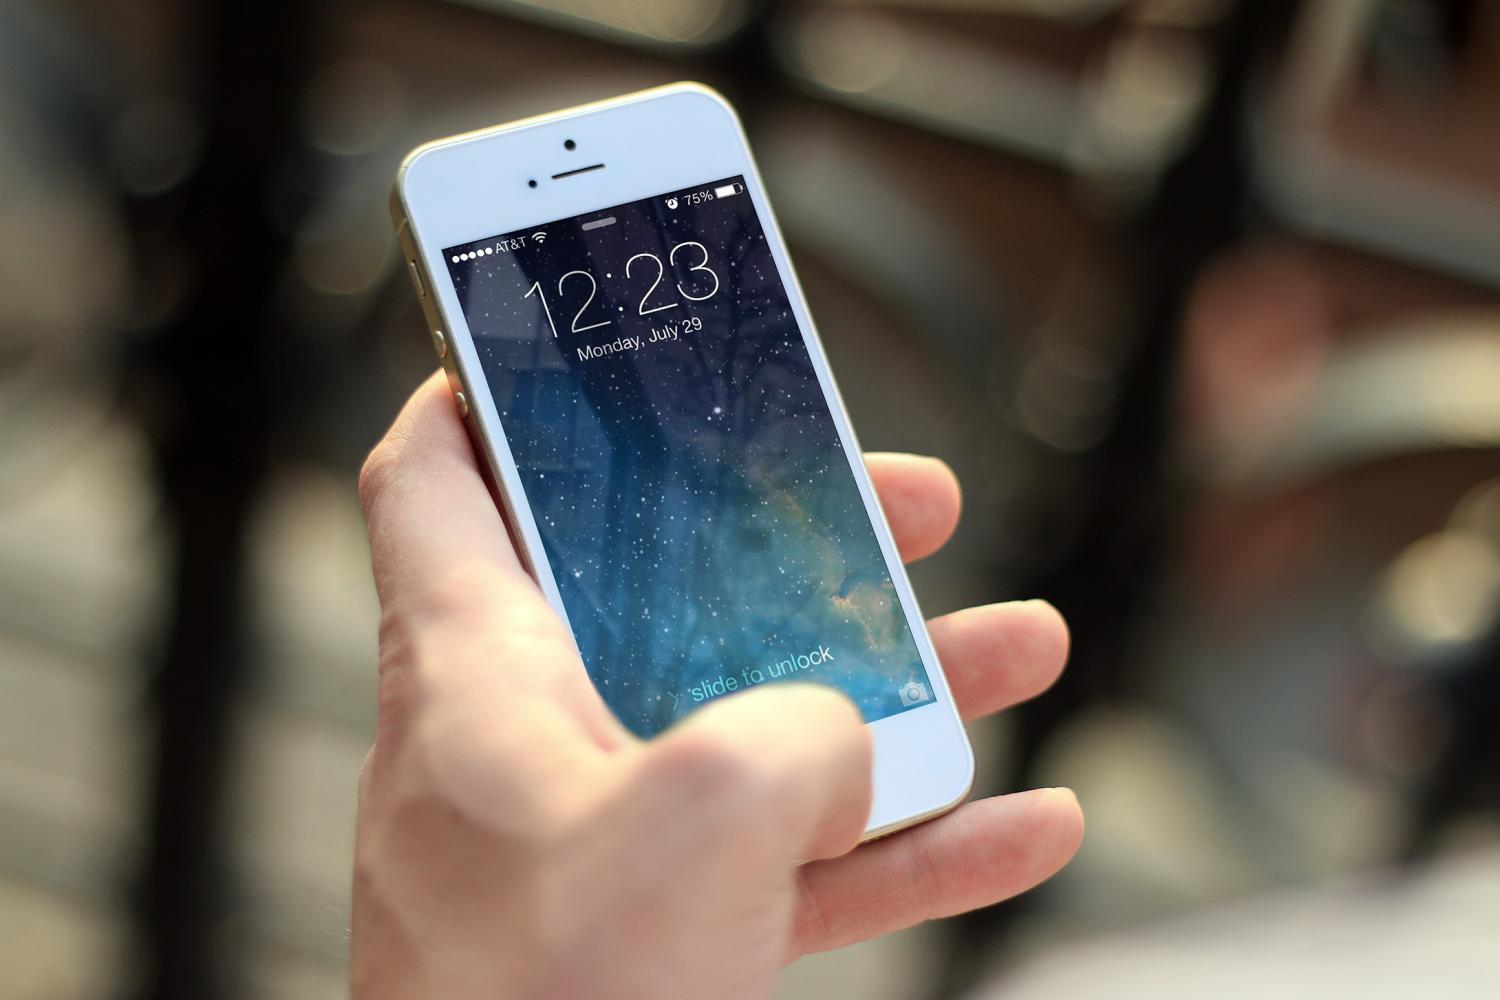 A hand holding a white iPhone with bokeh in the background